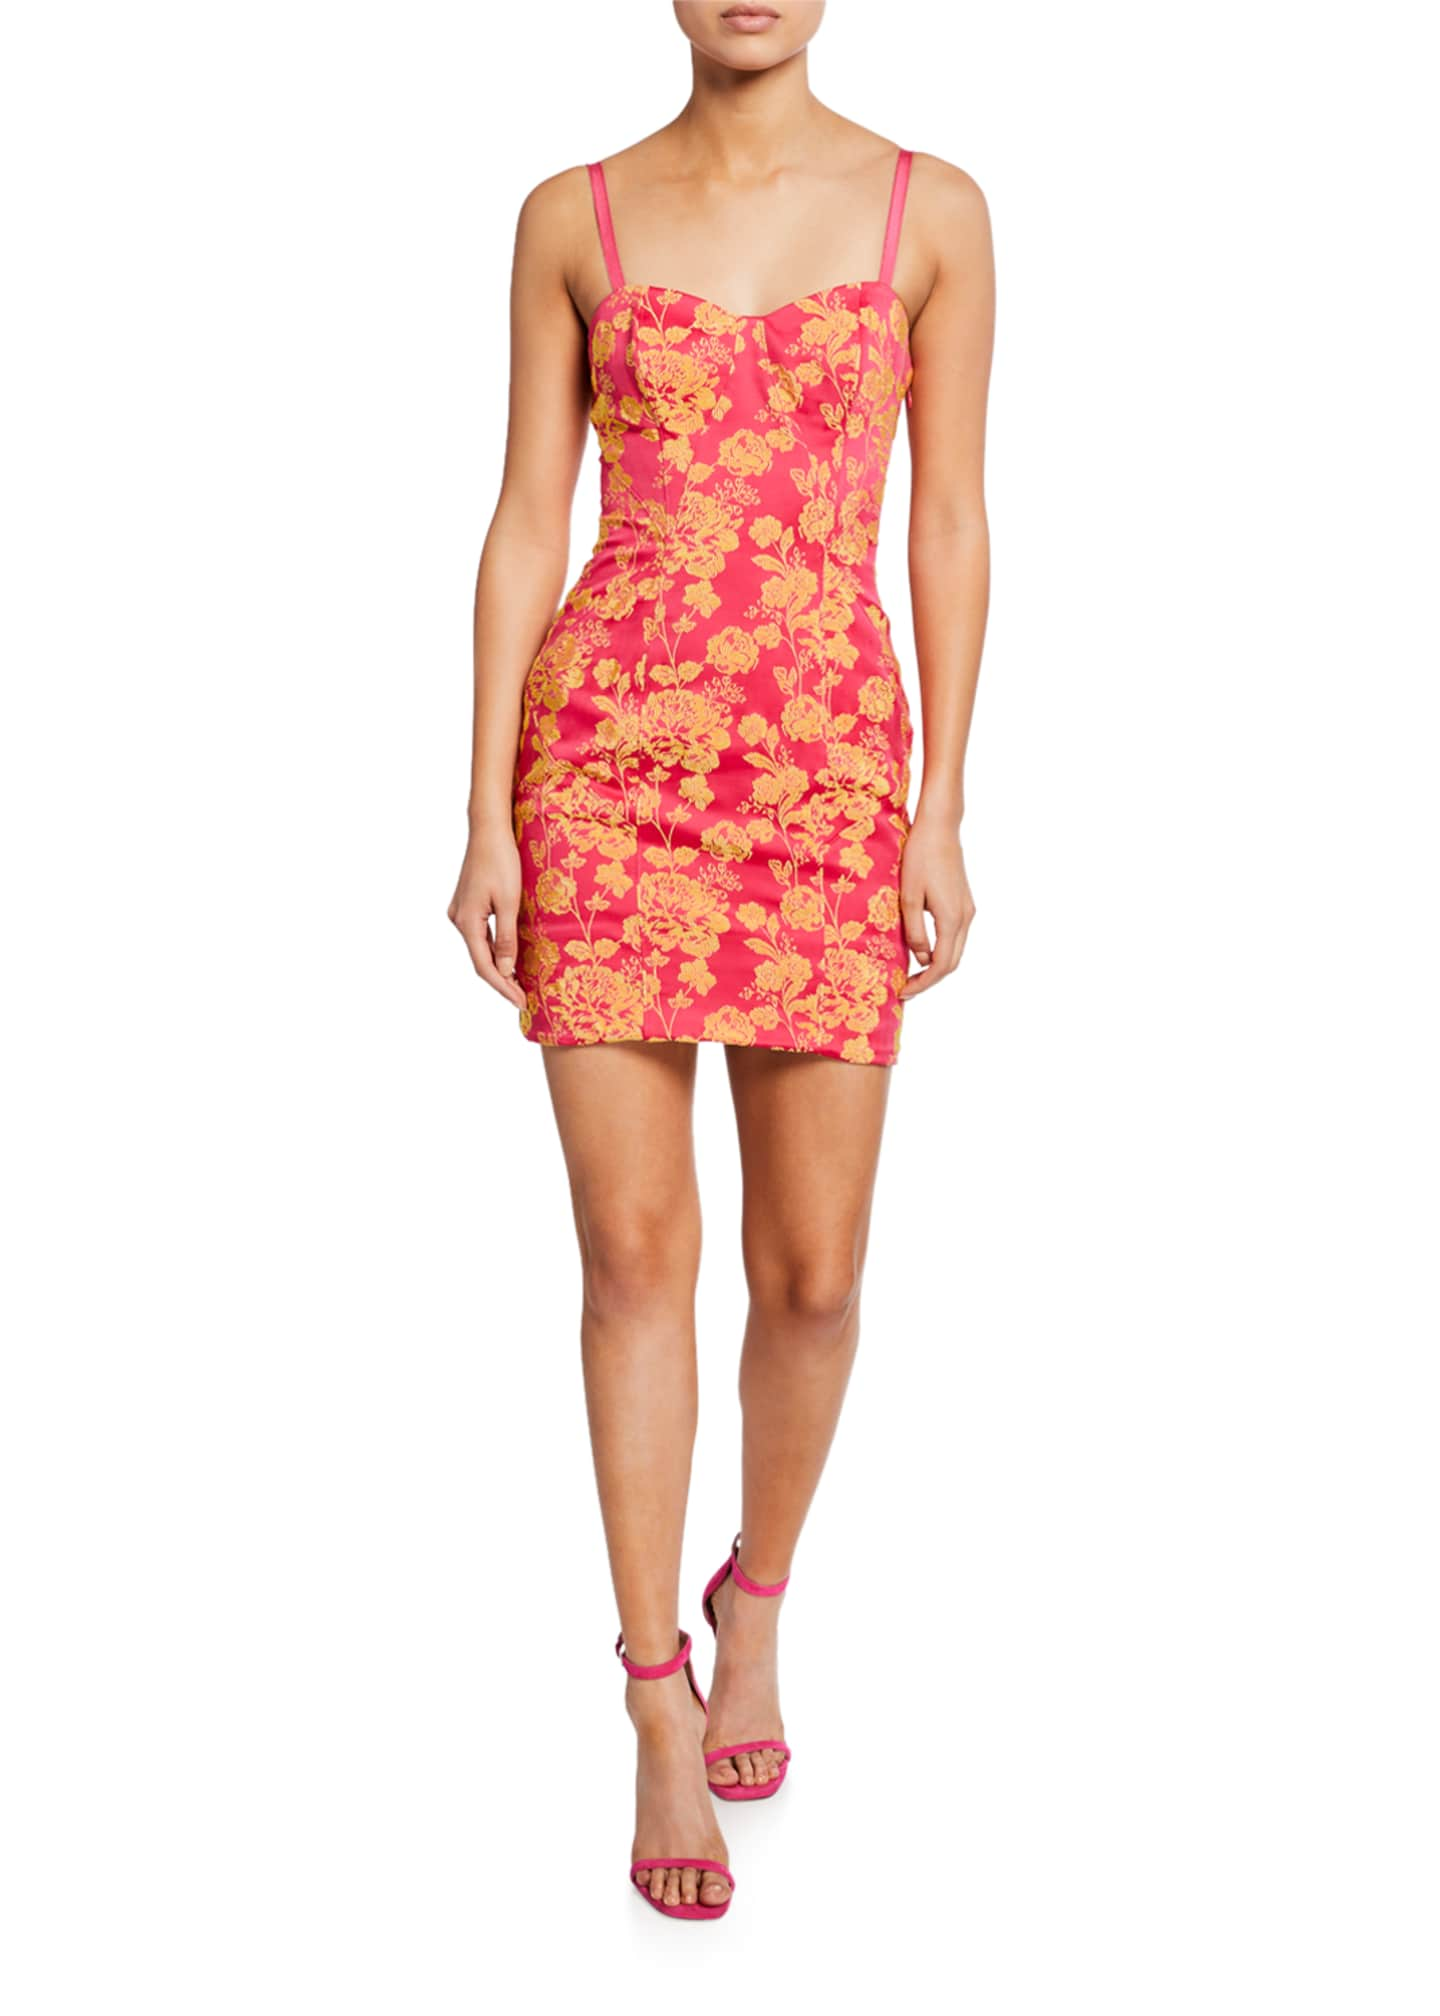 cinq a sept Erica Floral-Print Cutout Mini Dress